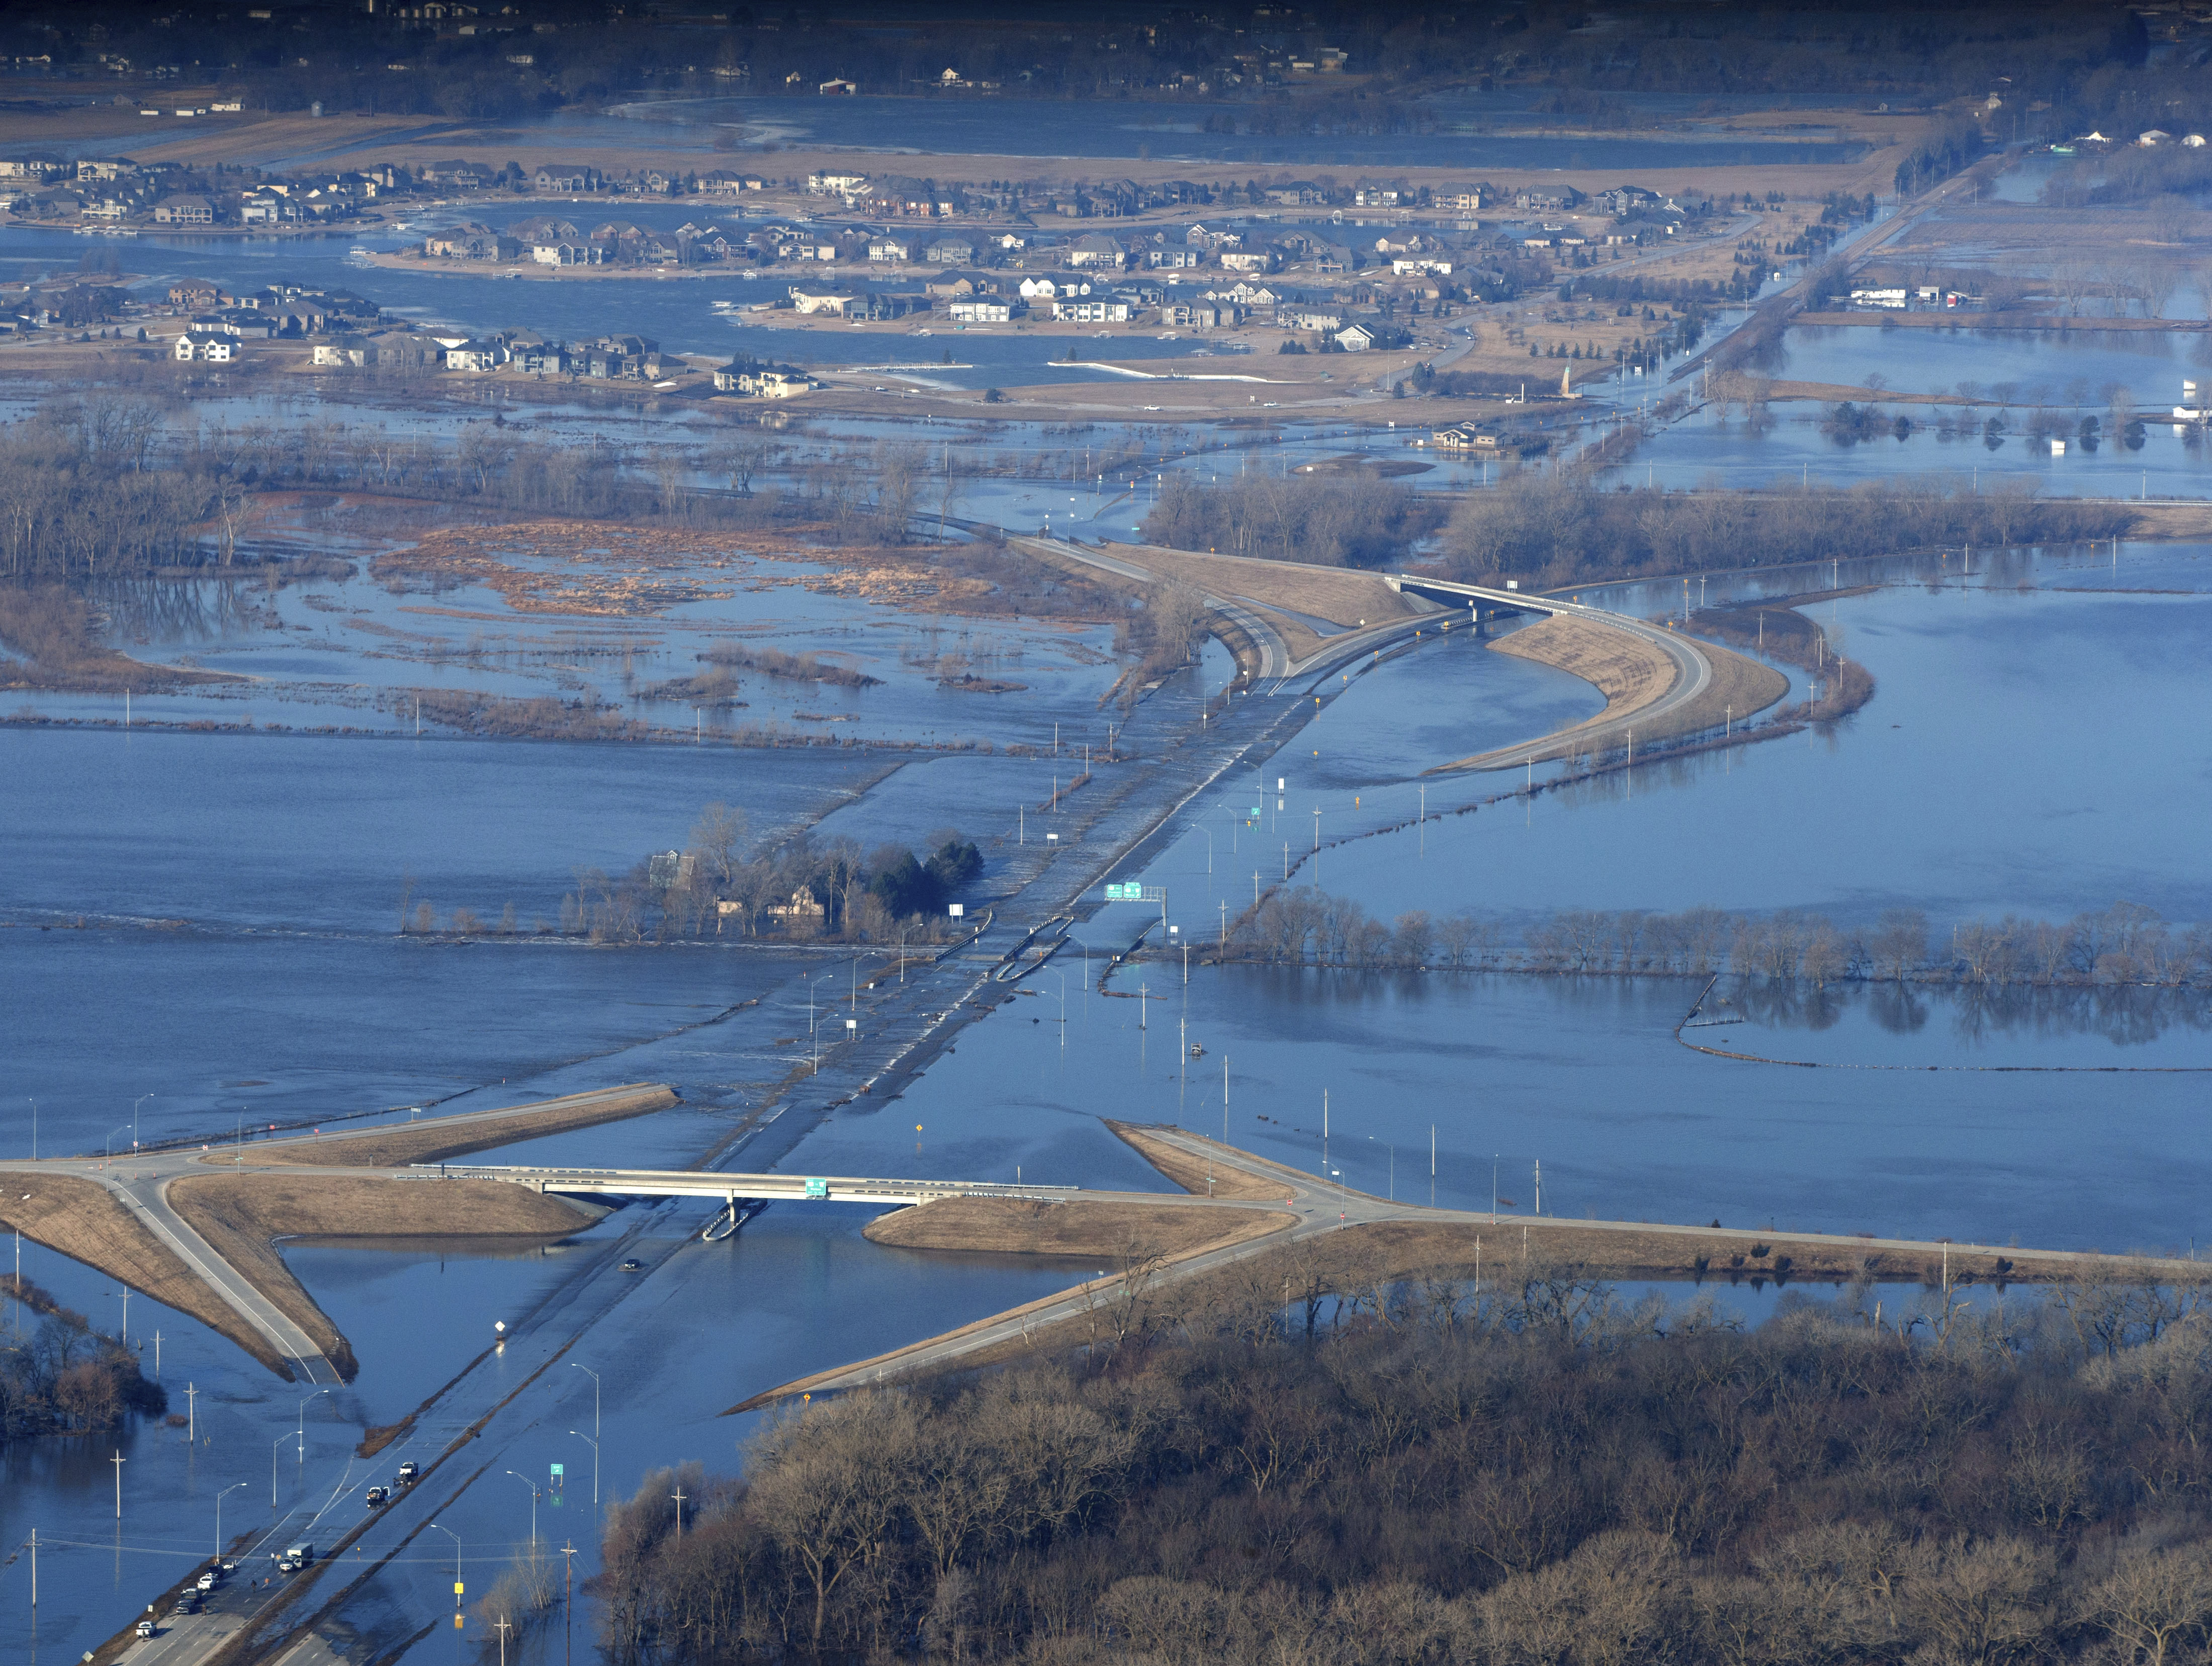 CORRECTS MONTH TO MARCH NOT MAY - The Elkhorn River consumes a section of western Douglas County Sunday, March 17, 2019, in Omaha, Neb. Hundreds of people were evacuated from their homes in Nebraska and Iowa as levees succumbed to the rush of water. (Jeff Bundy/Omaha World-Herald via AP)